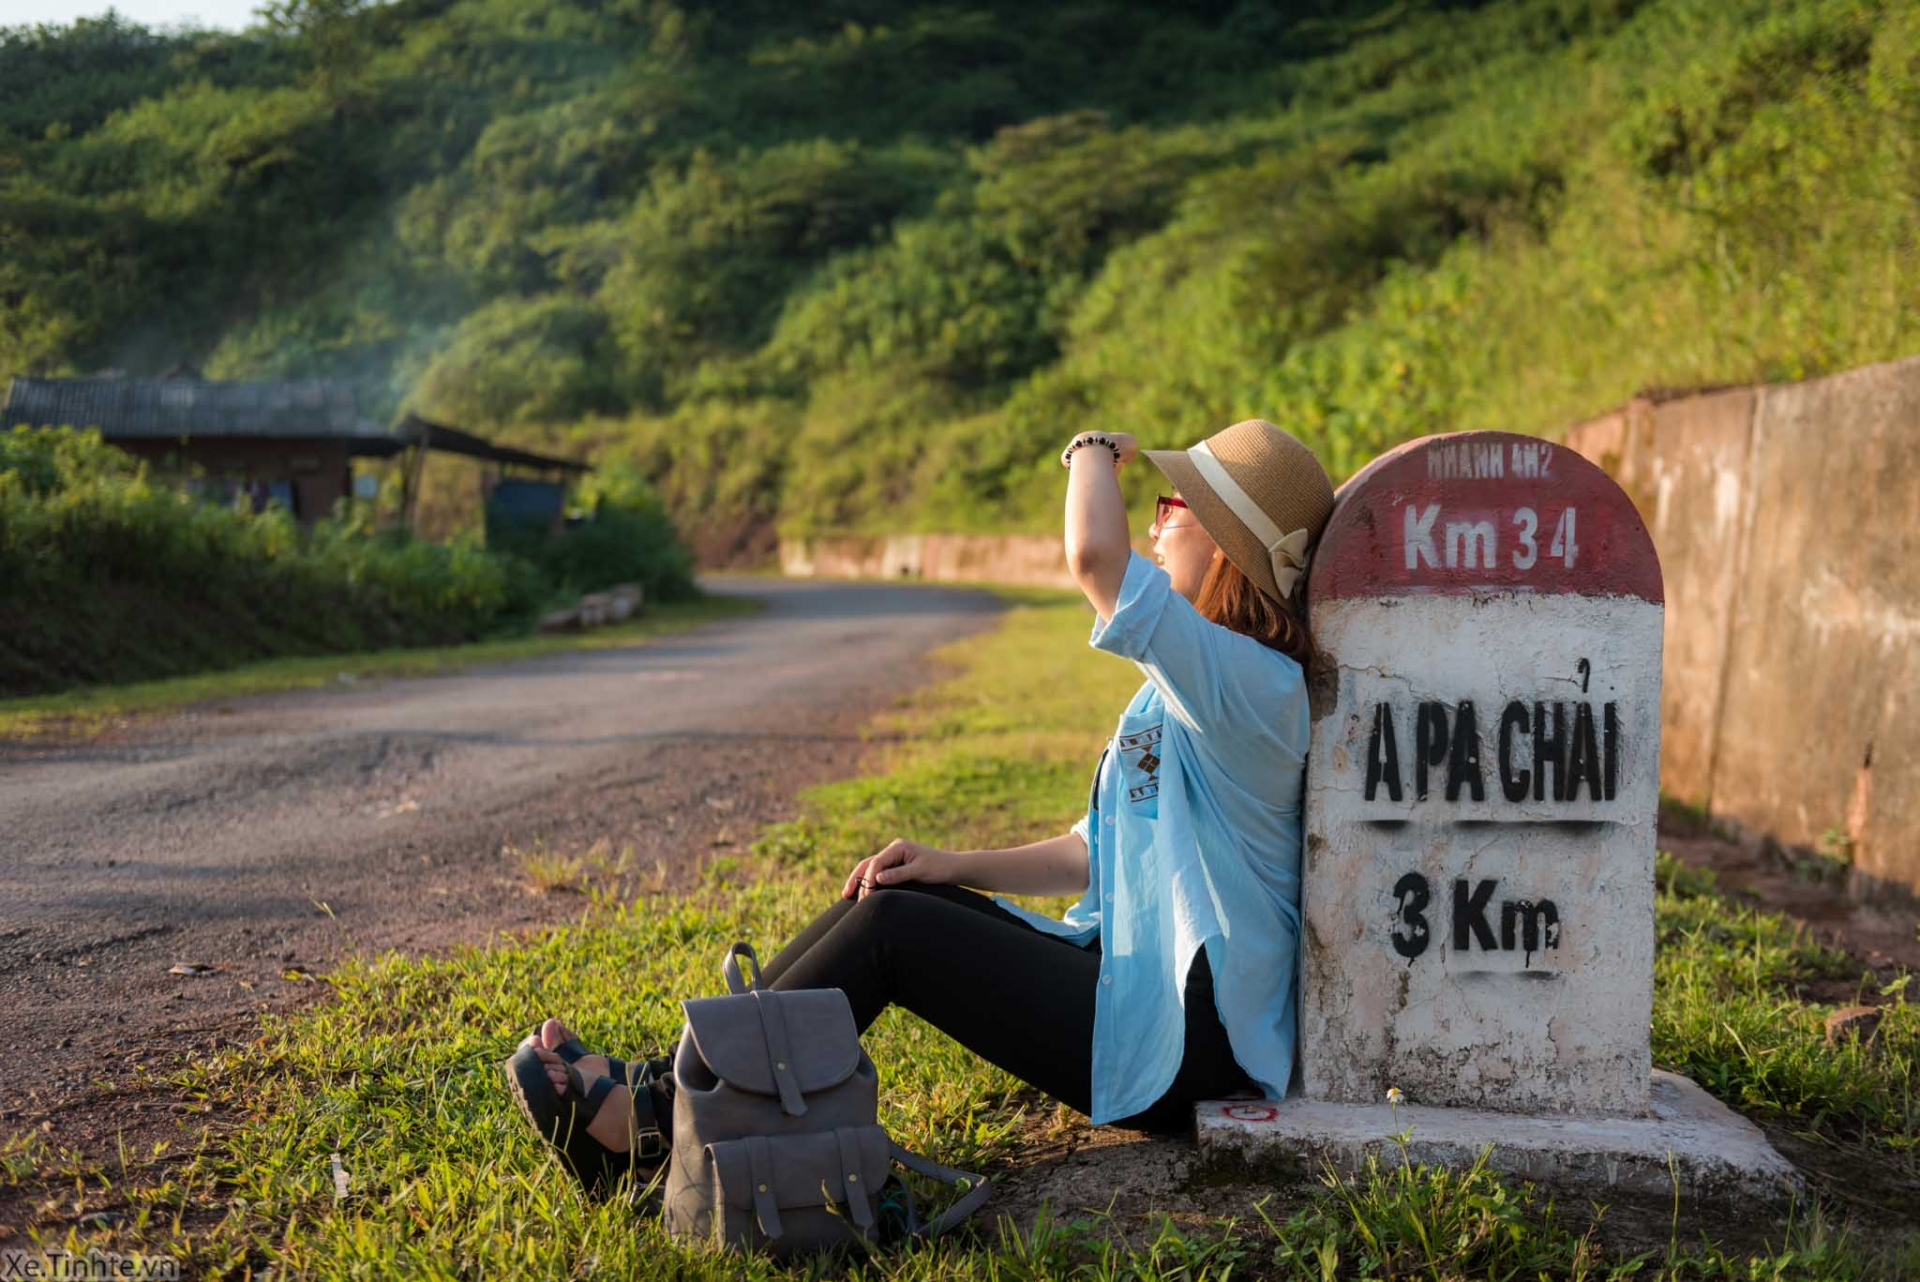 a pa chai moutain top venturesome travelers worth conquering list